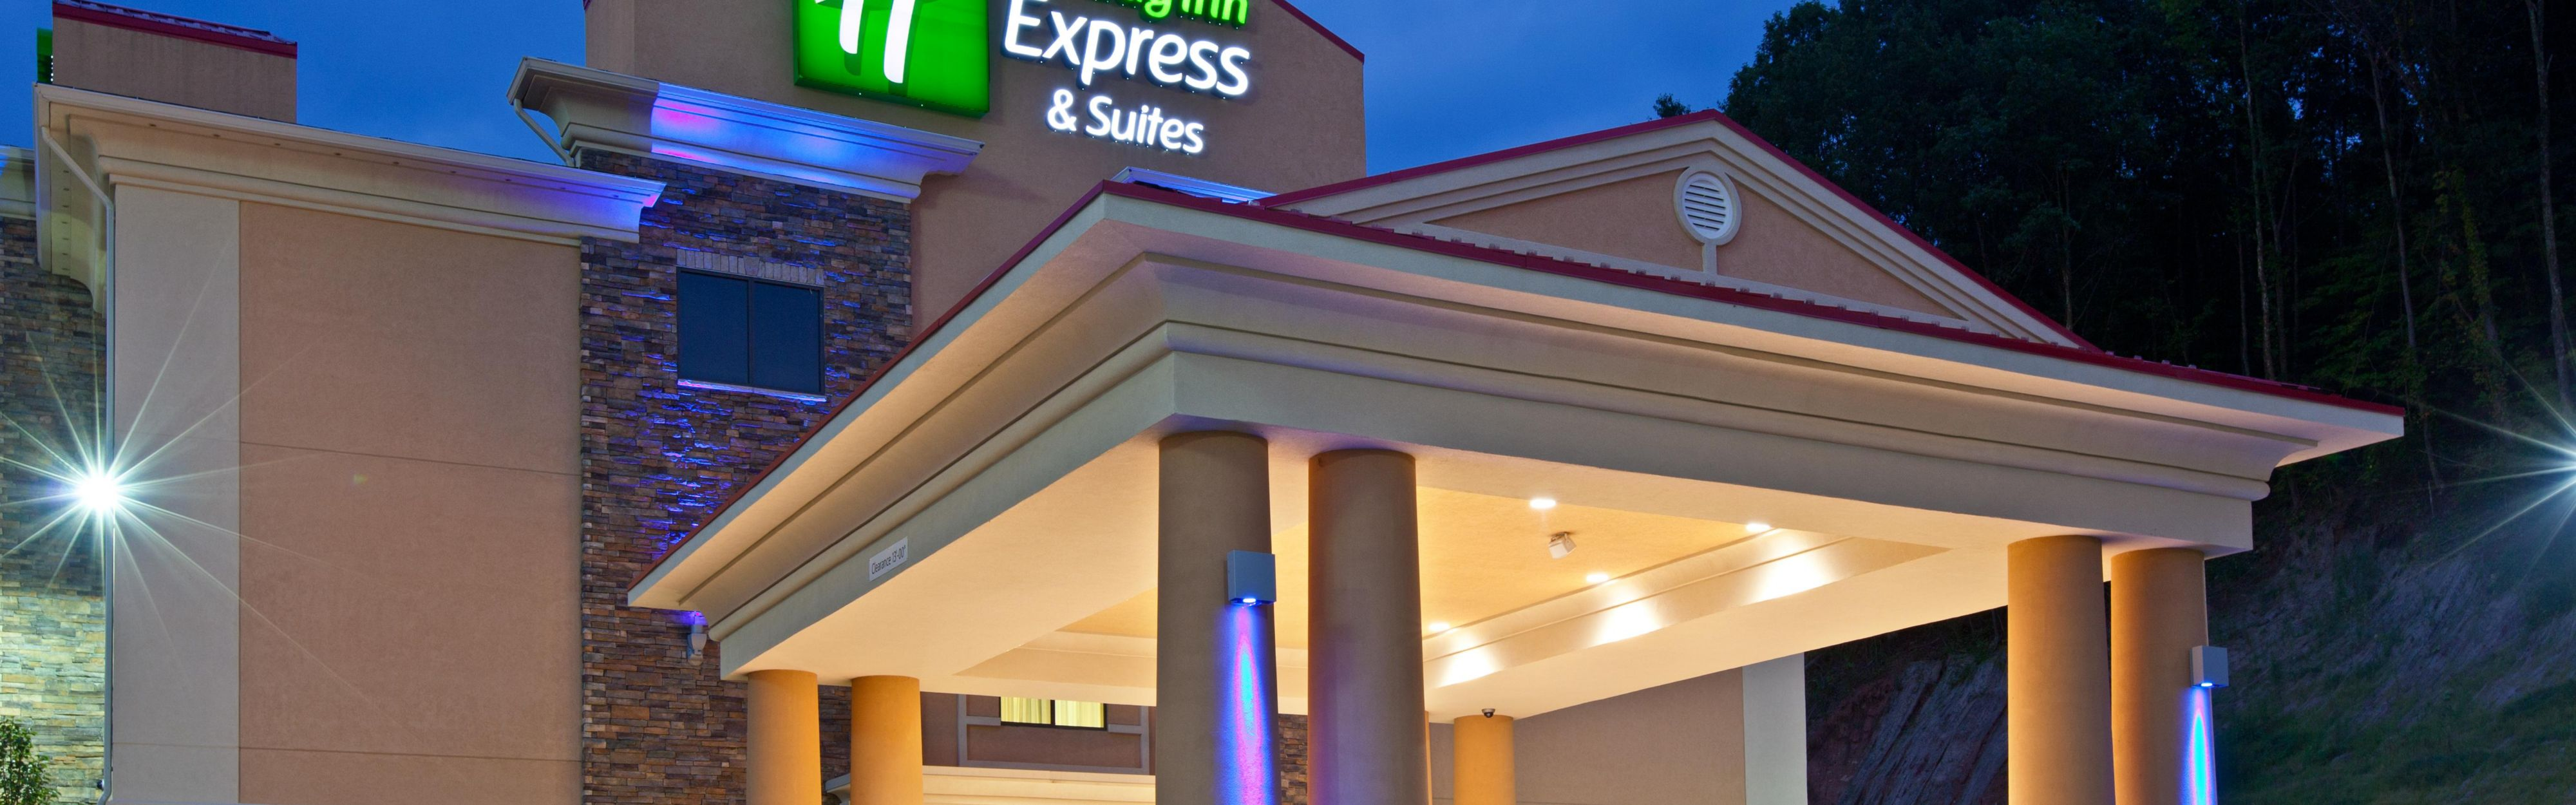 Holiday Inn Express & Suites Ripley image 0